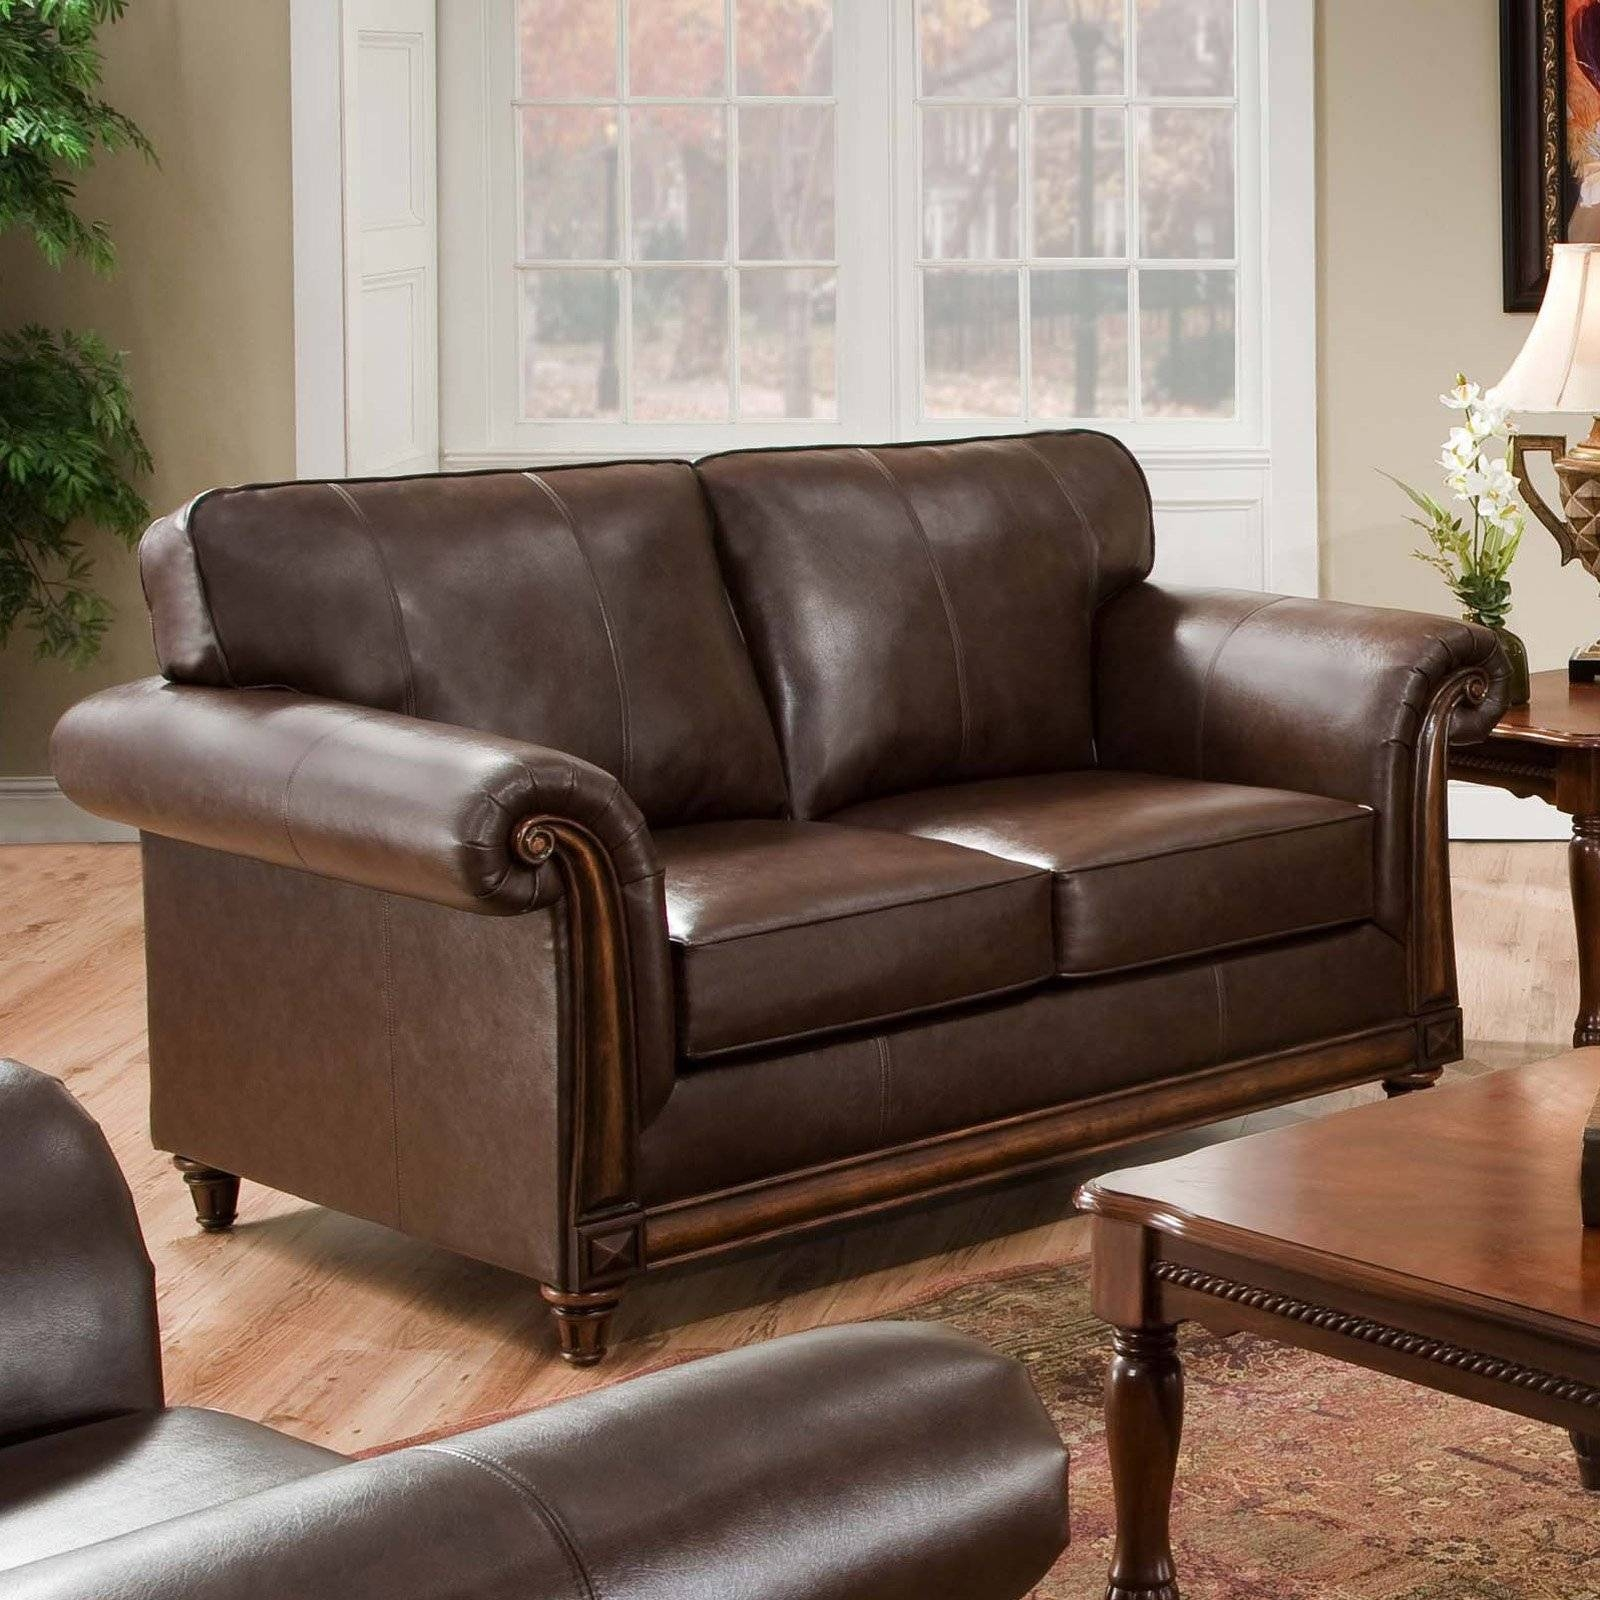 Simmons San Diego Coffee Leather Loveseat | Hayneedle In Simmons Leather Sofas And Loveseats (View 11 of 15)